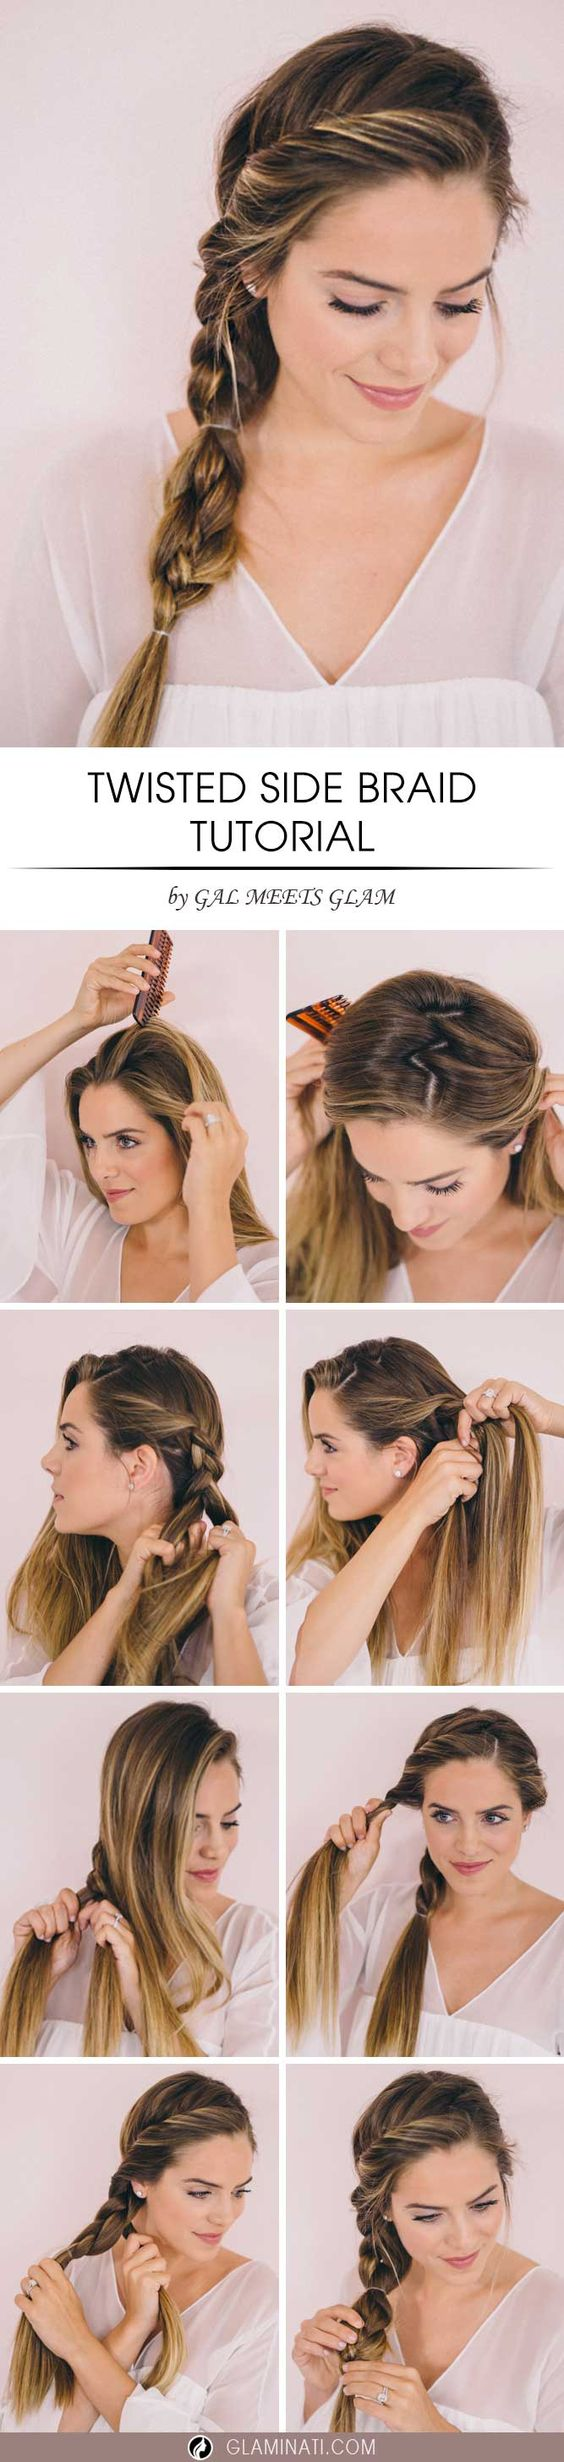 Medium Hairstyles with Twisted Side Braid